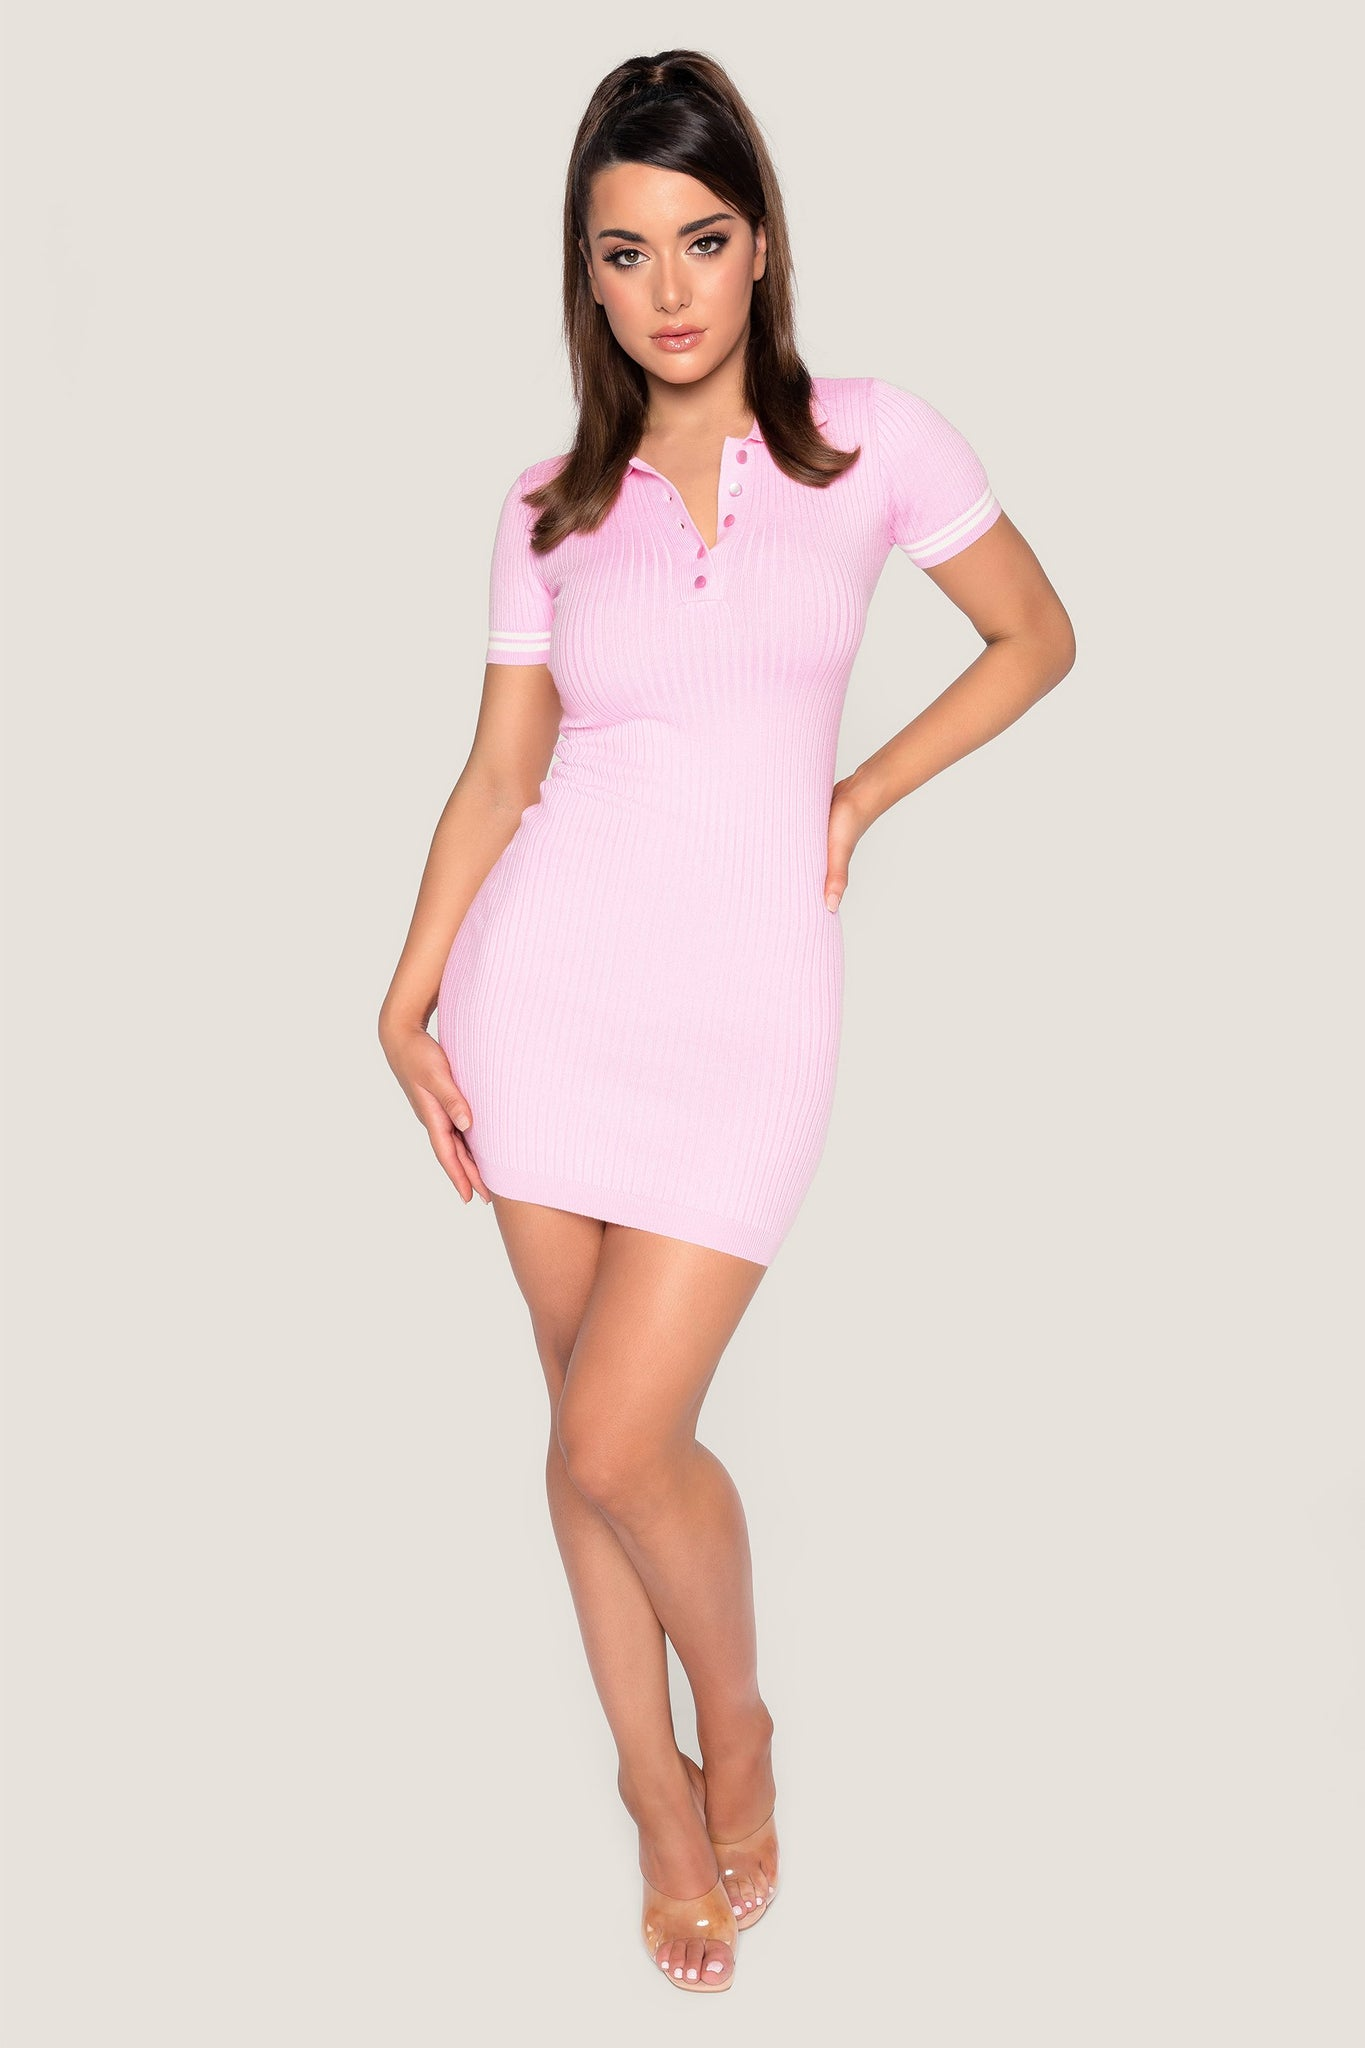 Cece Short Sleeve Polo Mini Dress - Pink - MESHKI